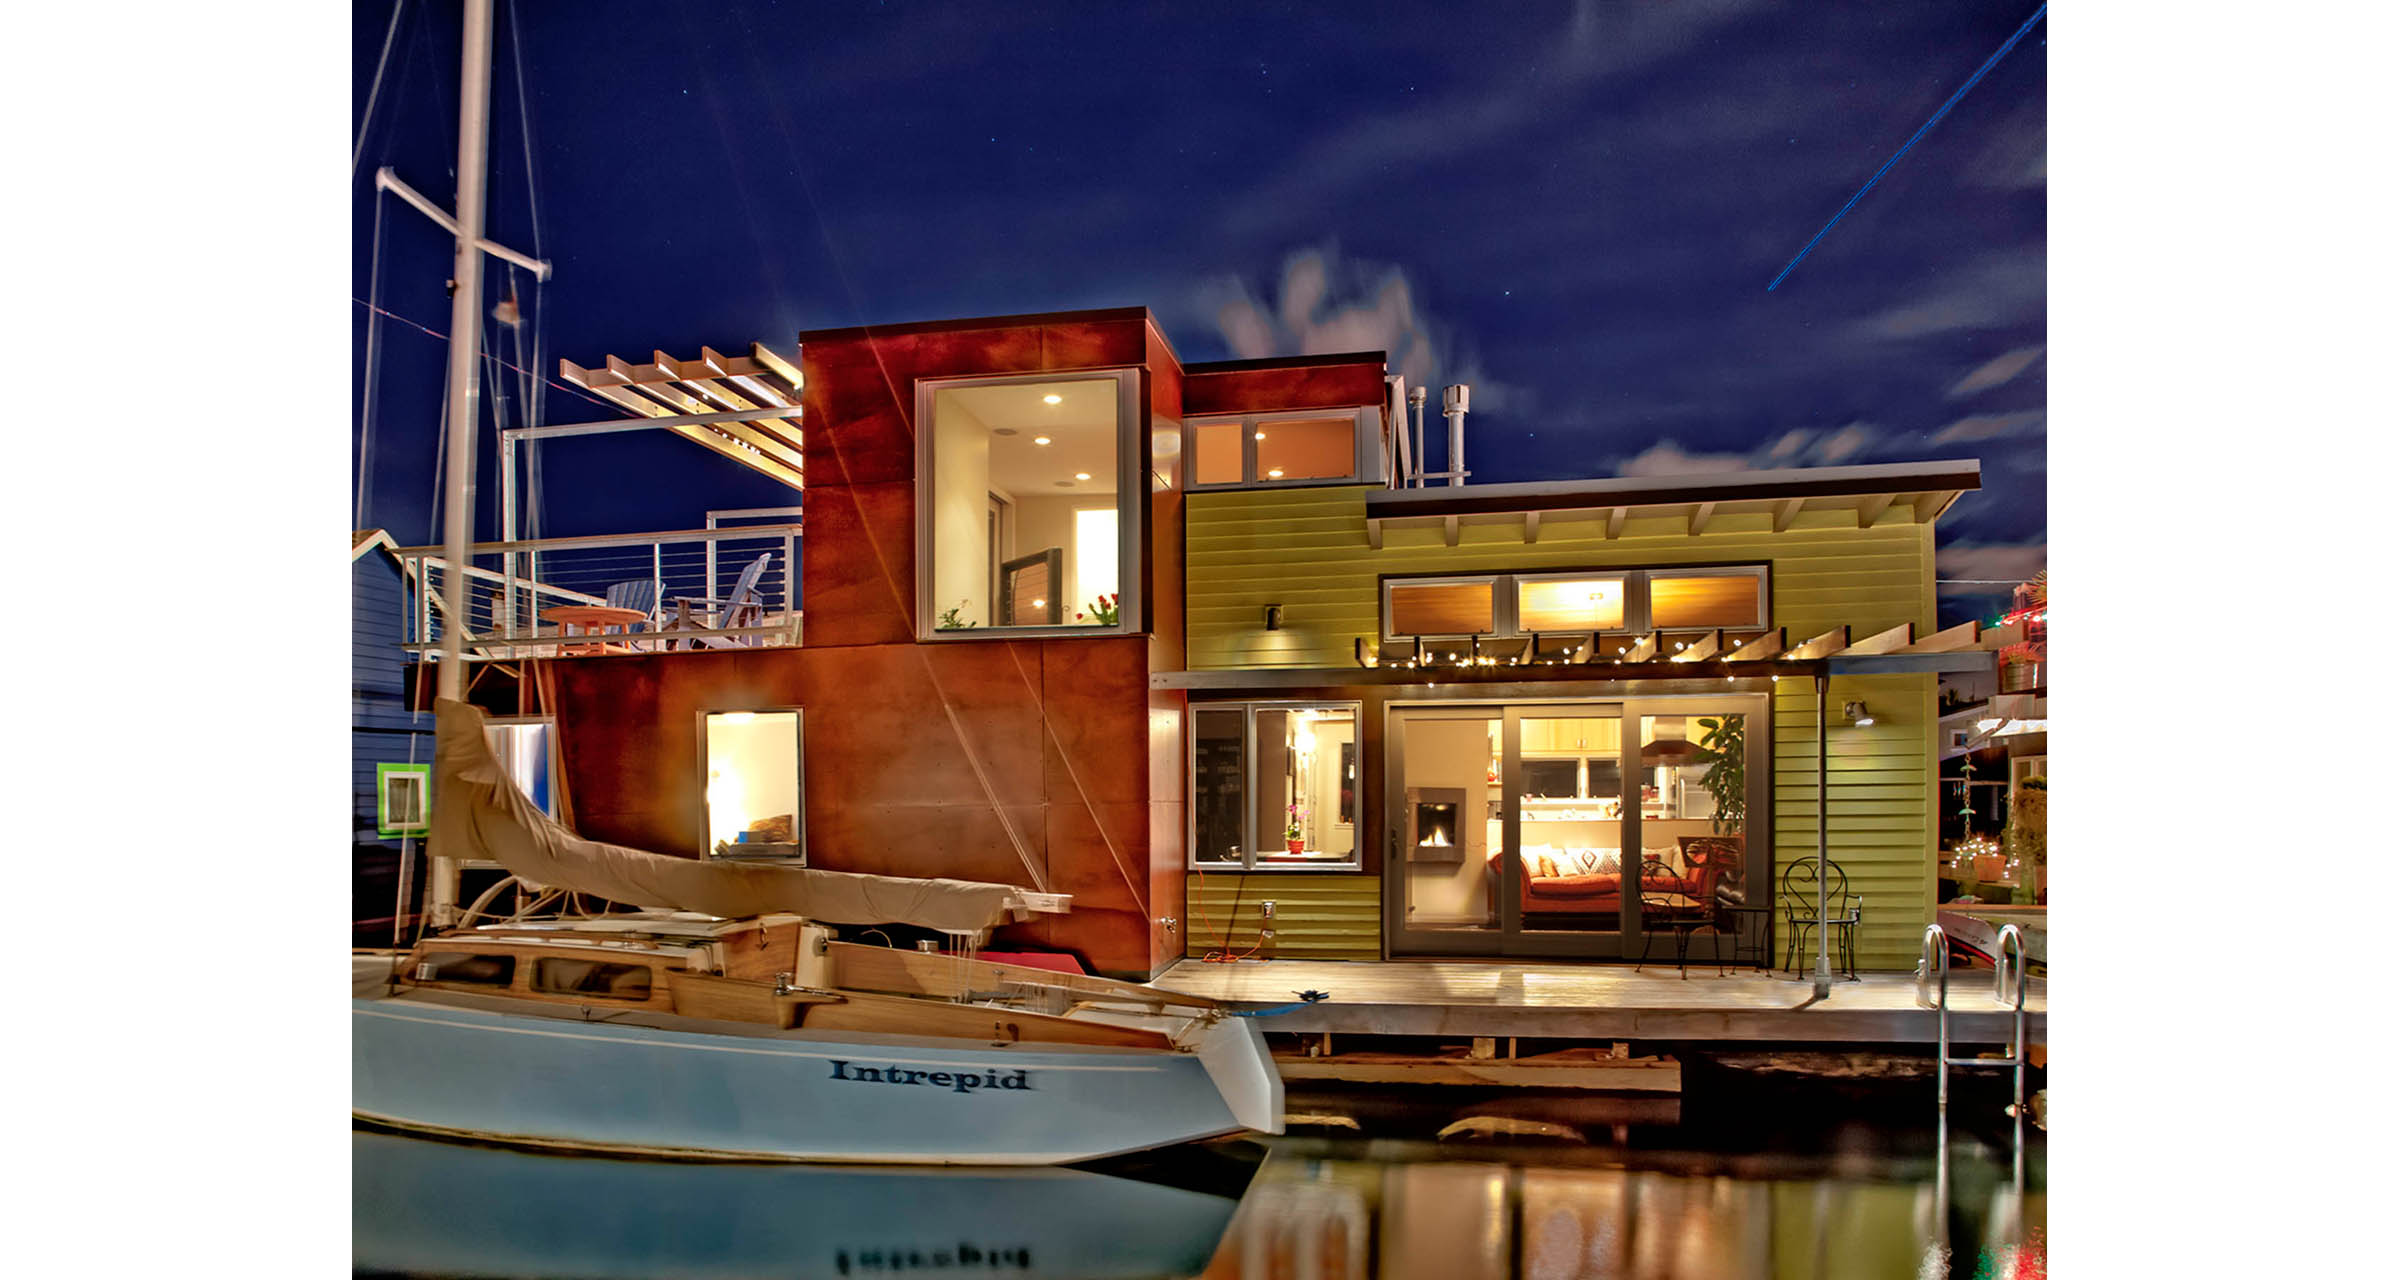 Image of exterior of remodeled floating home performed by residential architecture firm Donnally Architects in Seattle, Washington